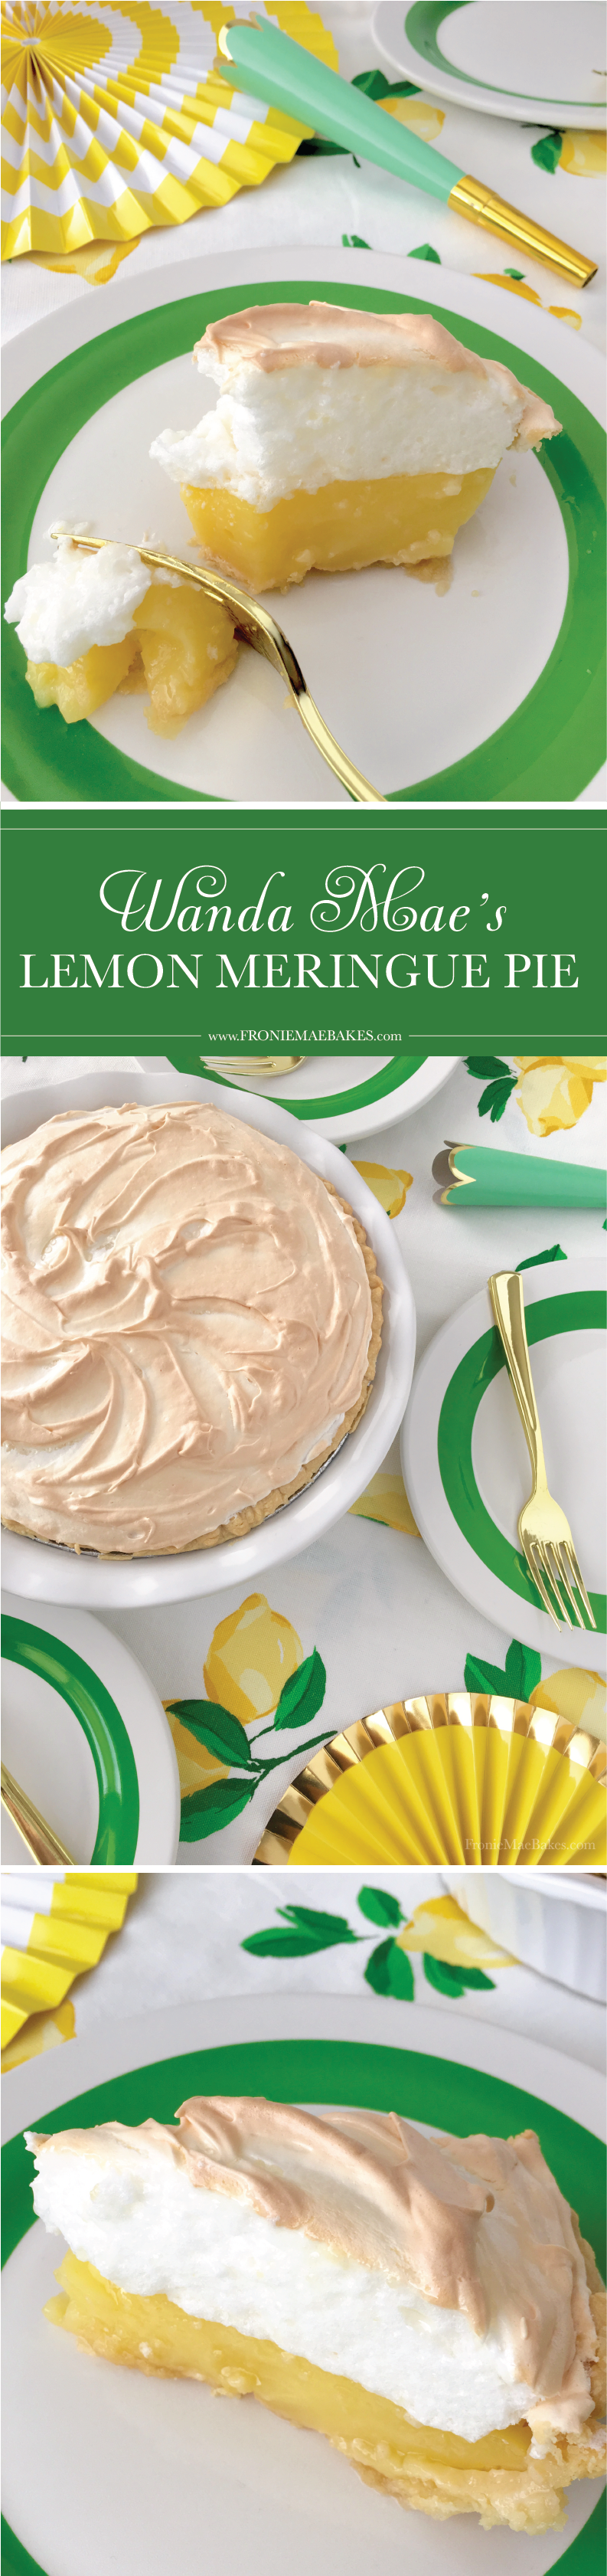 Make Wanda Mae's Homemade Lemon Meringue Pie Recipe TODAY! www.FronieMaeBakes.com